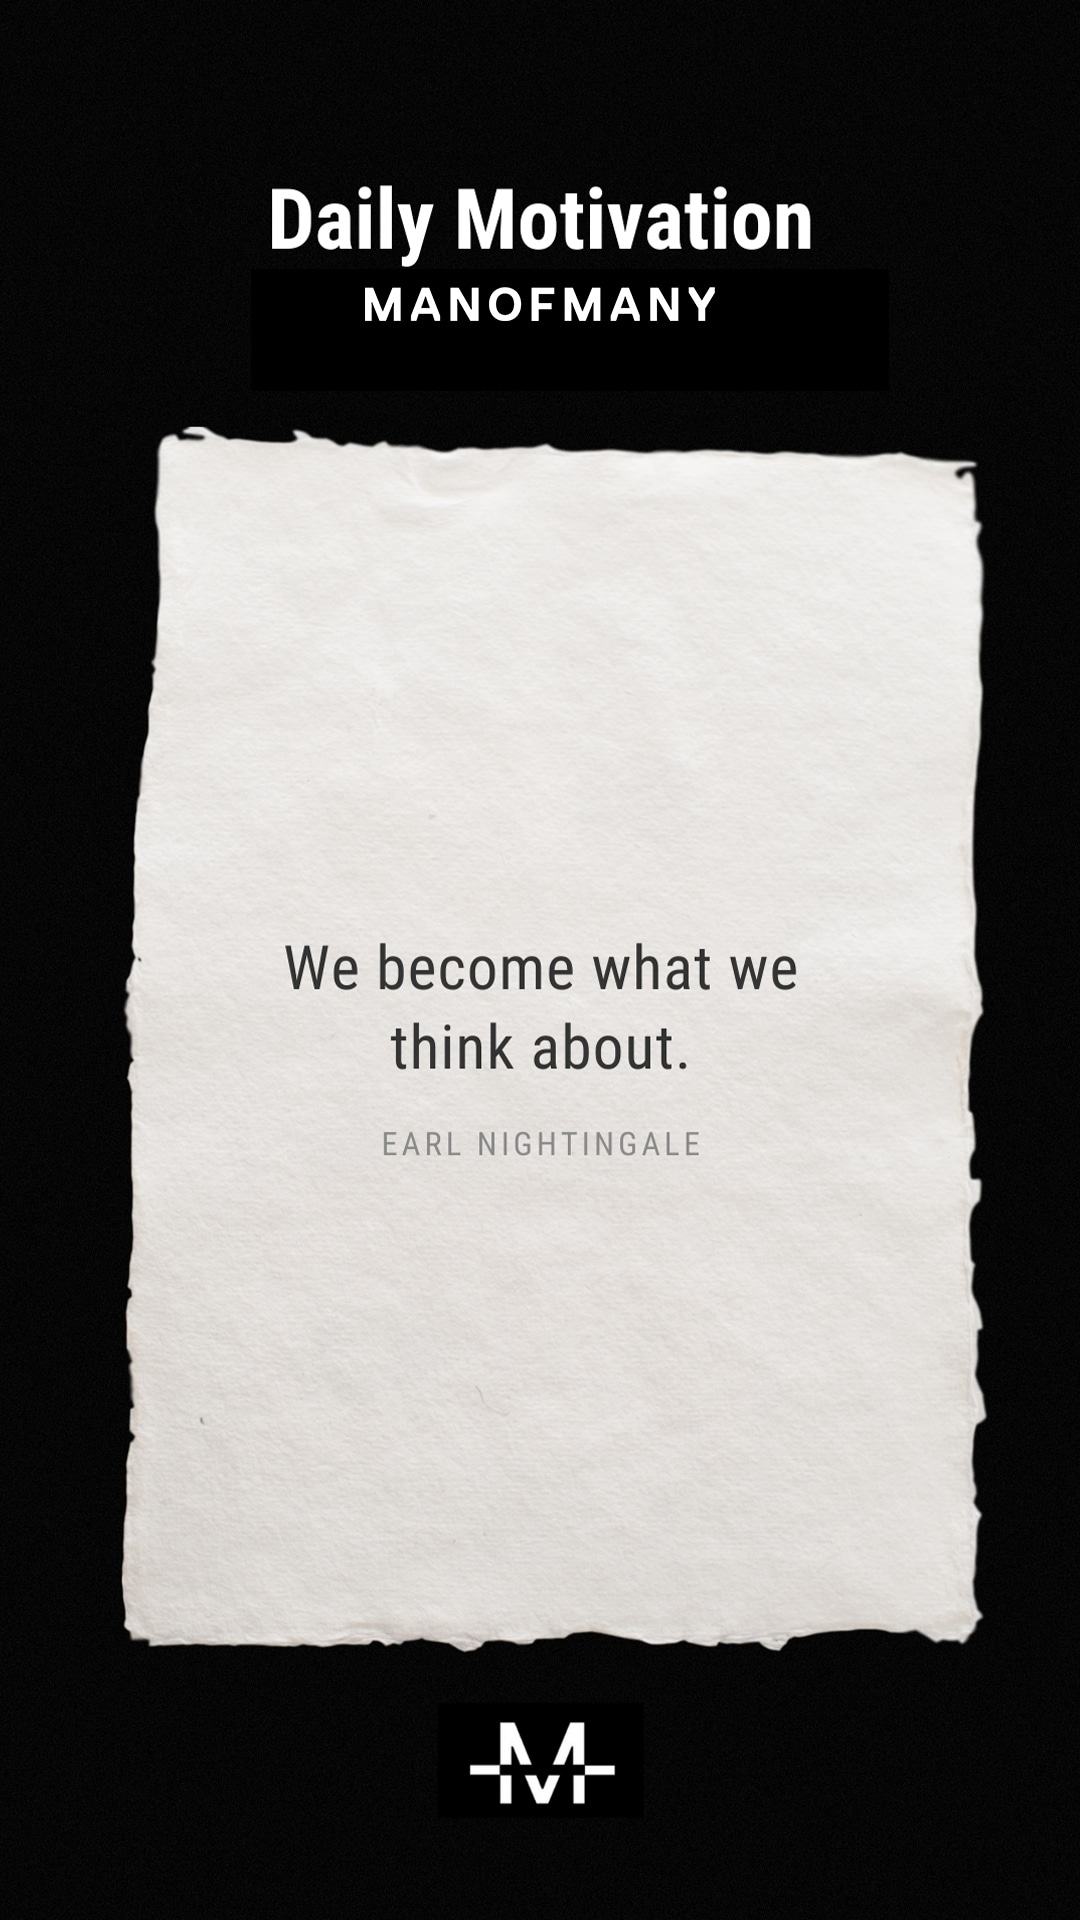 We become what we think about. –Earl Nightingale quote